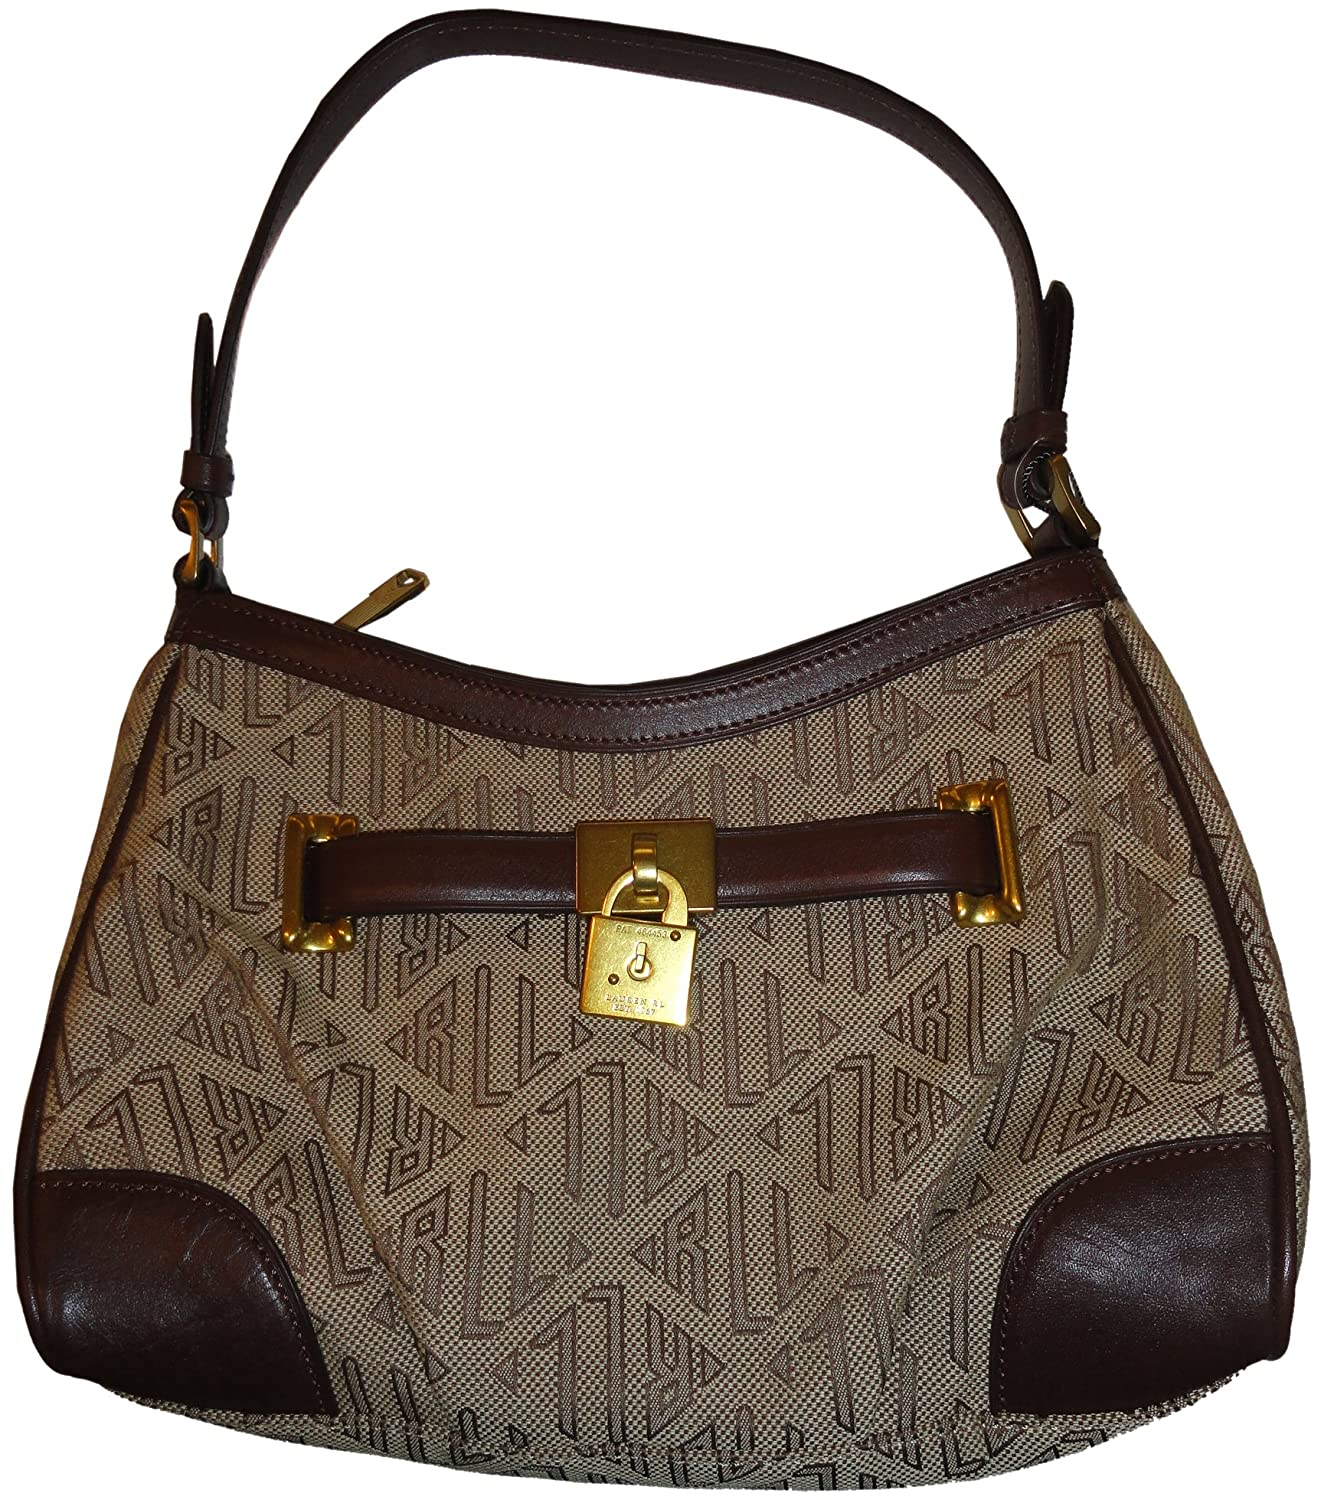 90c0cdcdd9 Womens ralph lauren purse handbag small signature shoulder bag khaki brown  shoes jpg 1321x1500 Lauren ralph